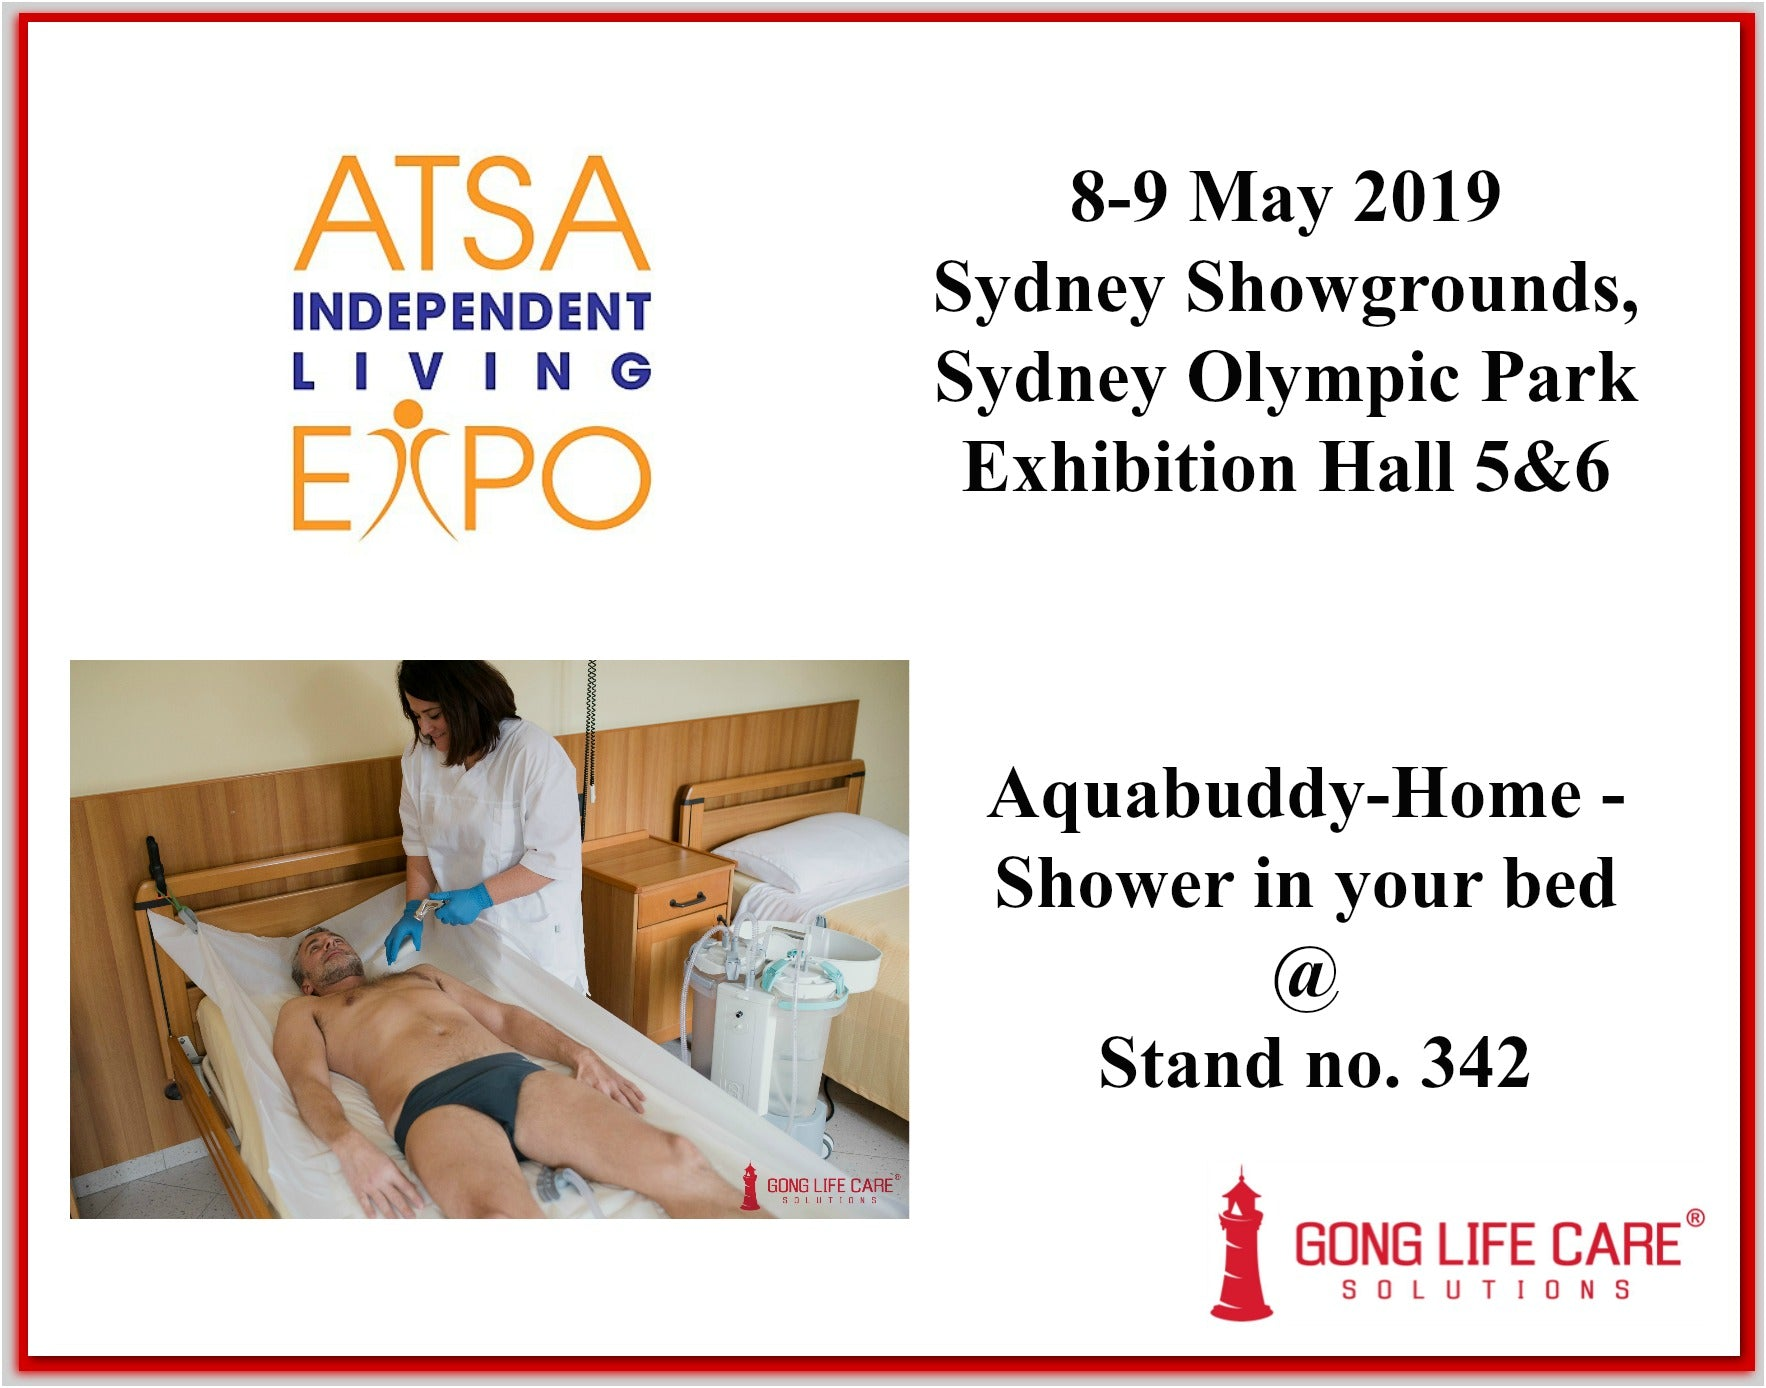 Aquabuddy-Home - Shower in Bed at ATSA Sydney 2019